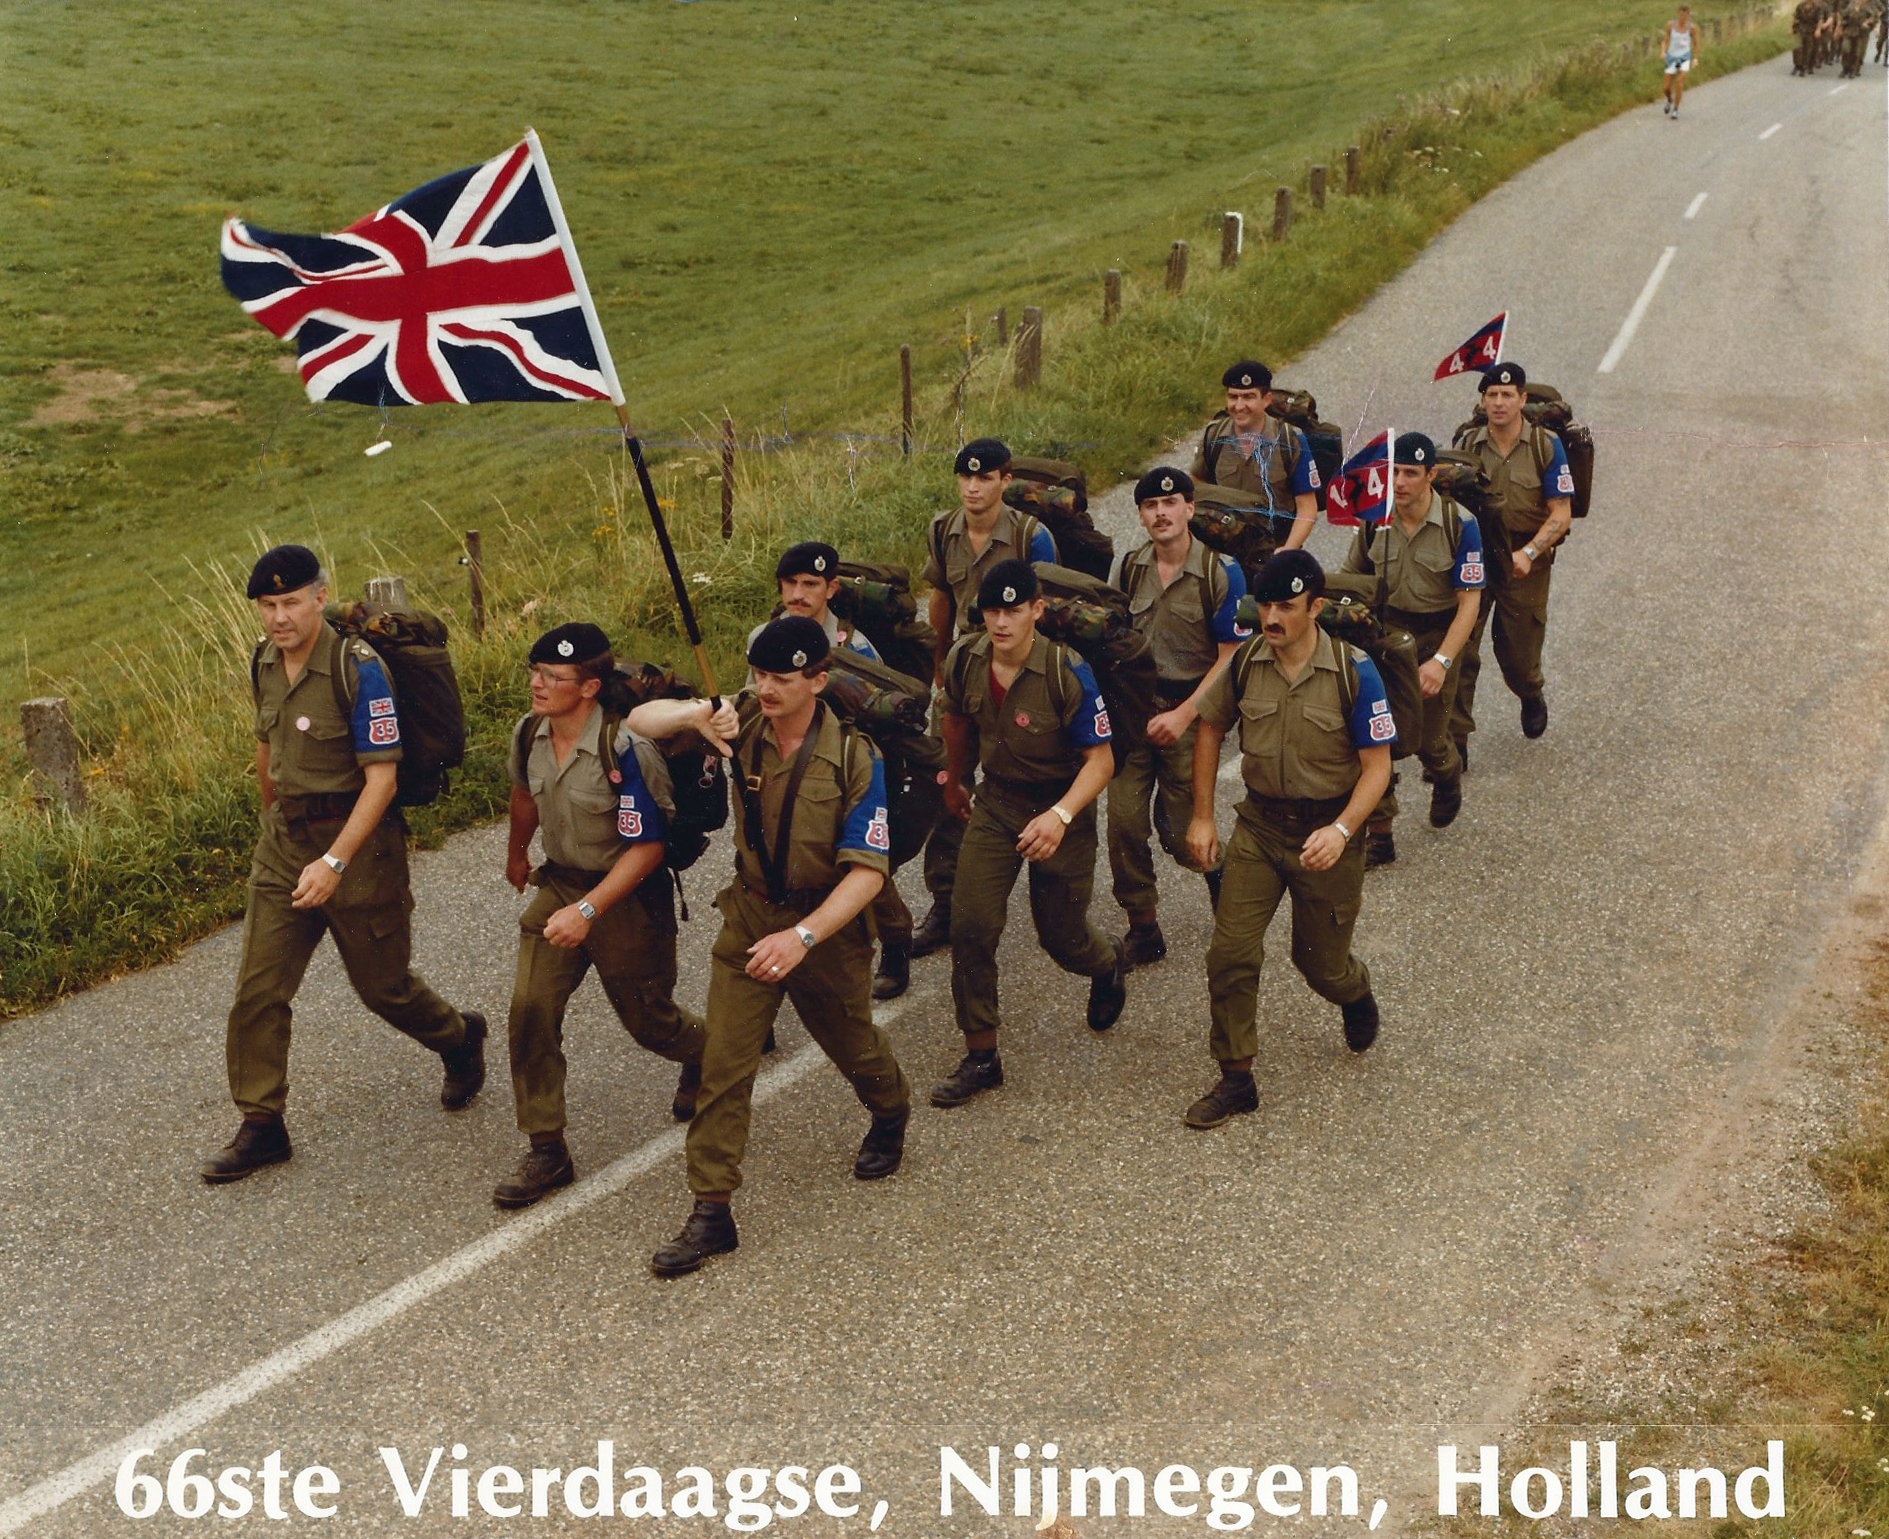 Royal Engineers, 44 Squadron Marching Team, 1982. Three Points of the Compass is third back to the right of the team